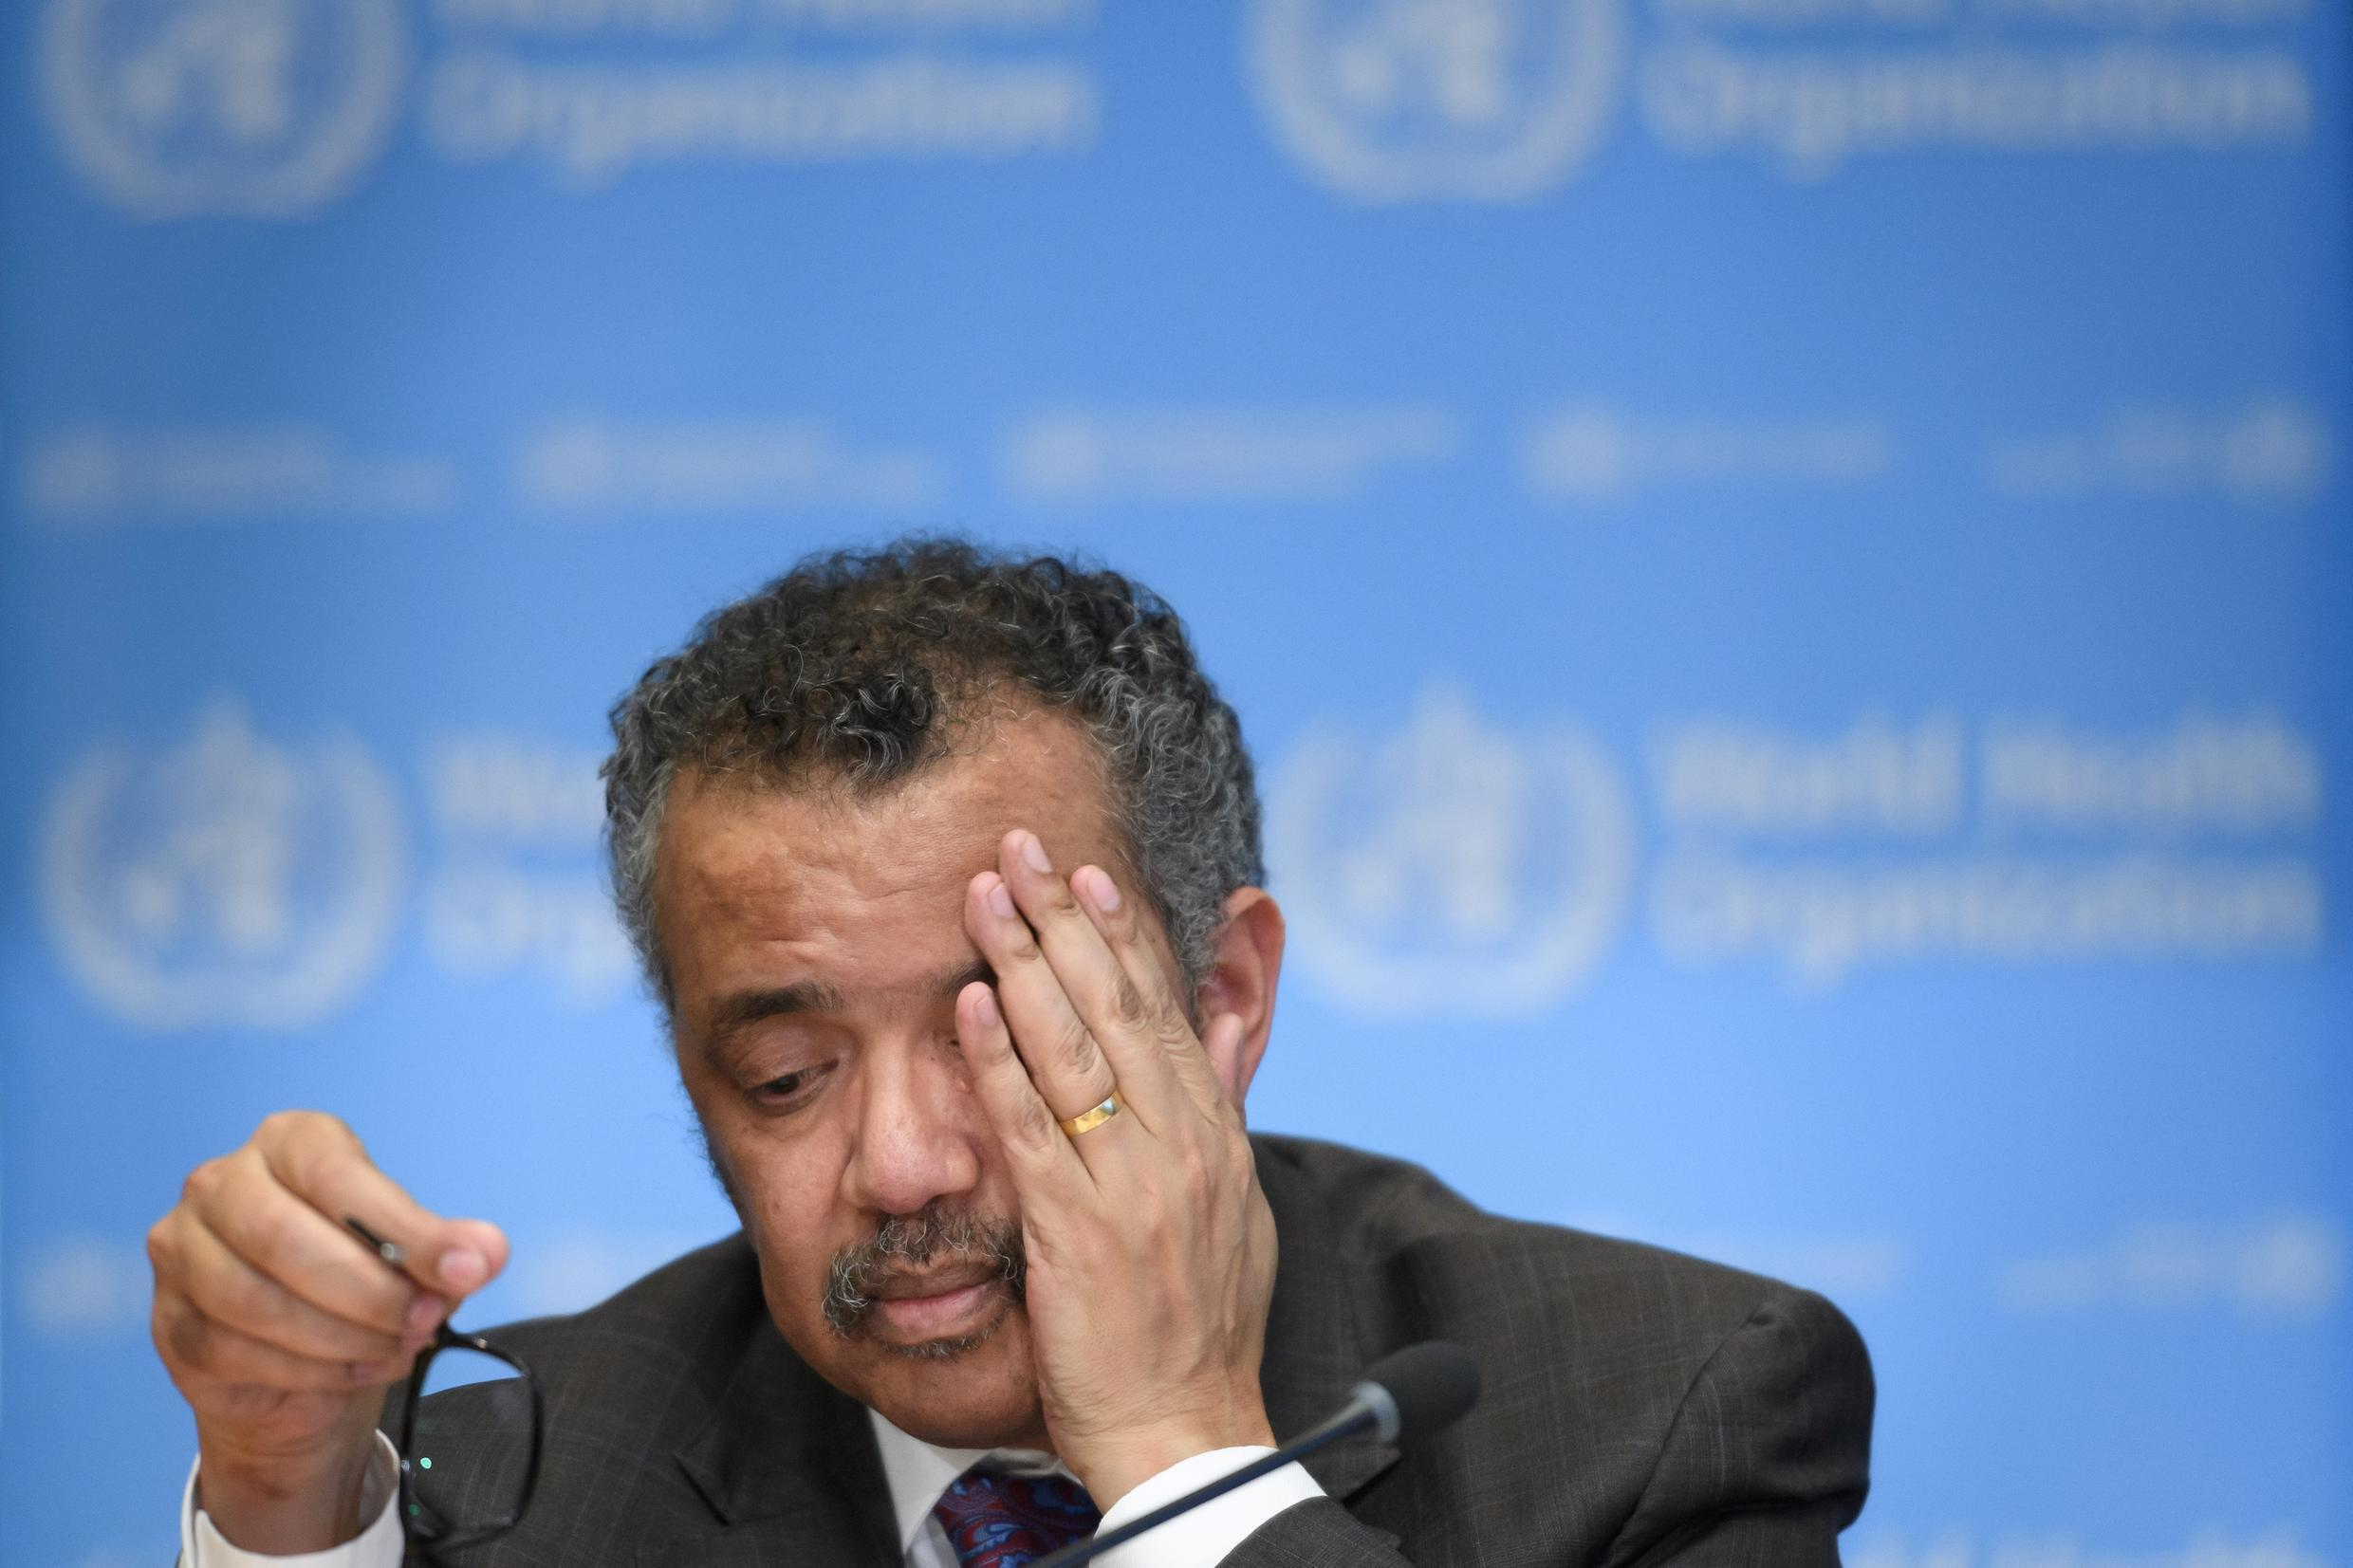 'It's sobering to think that six months ago, when you recommended I declare a(n emergency), there were less than 100 cases and no deaths outside China,' said WHO chief Tedros